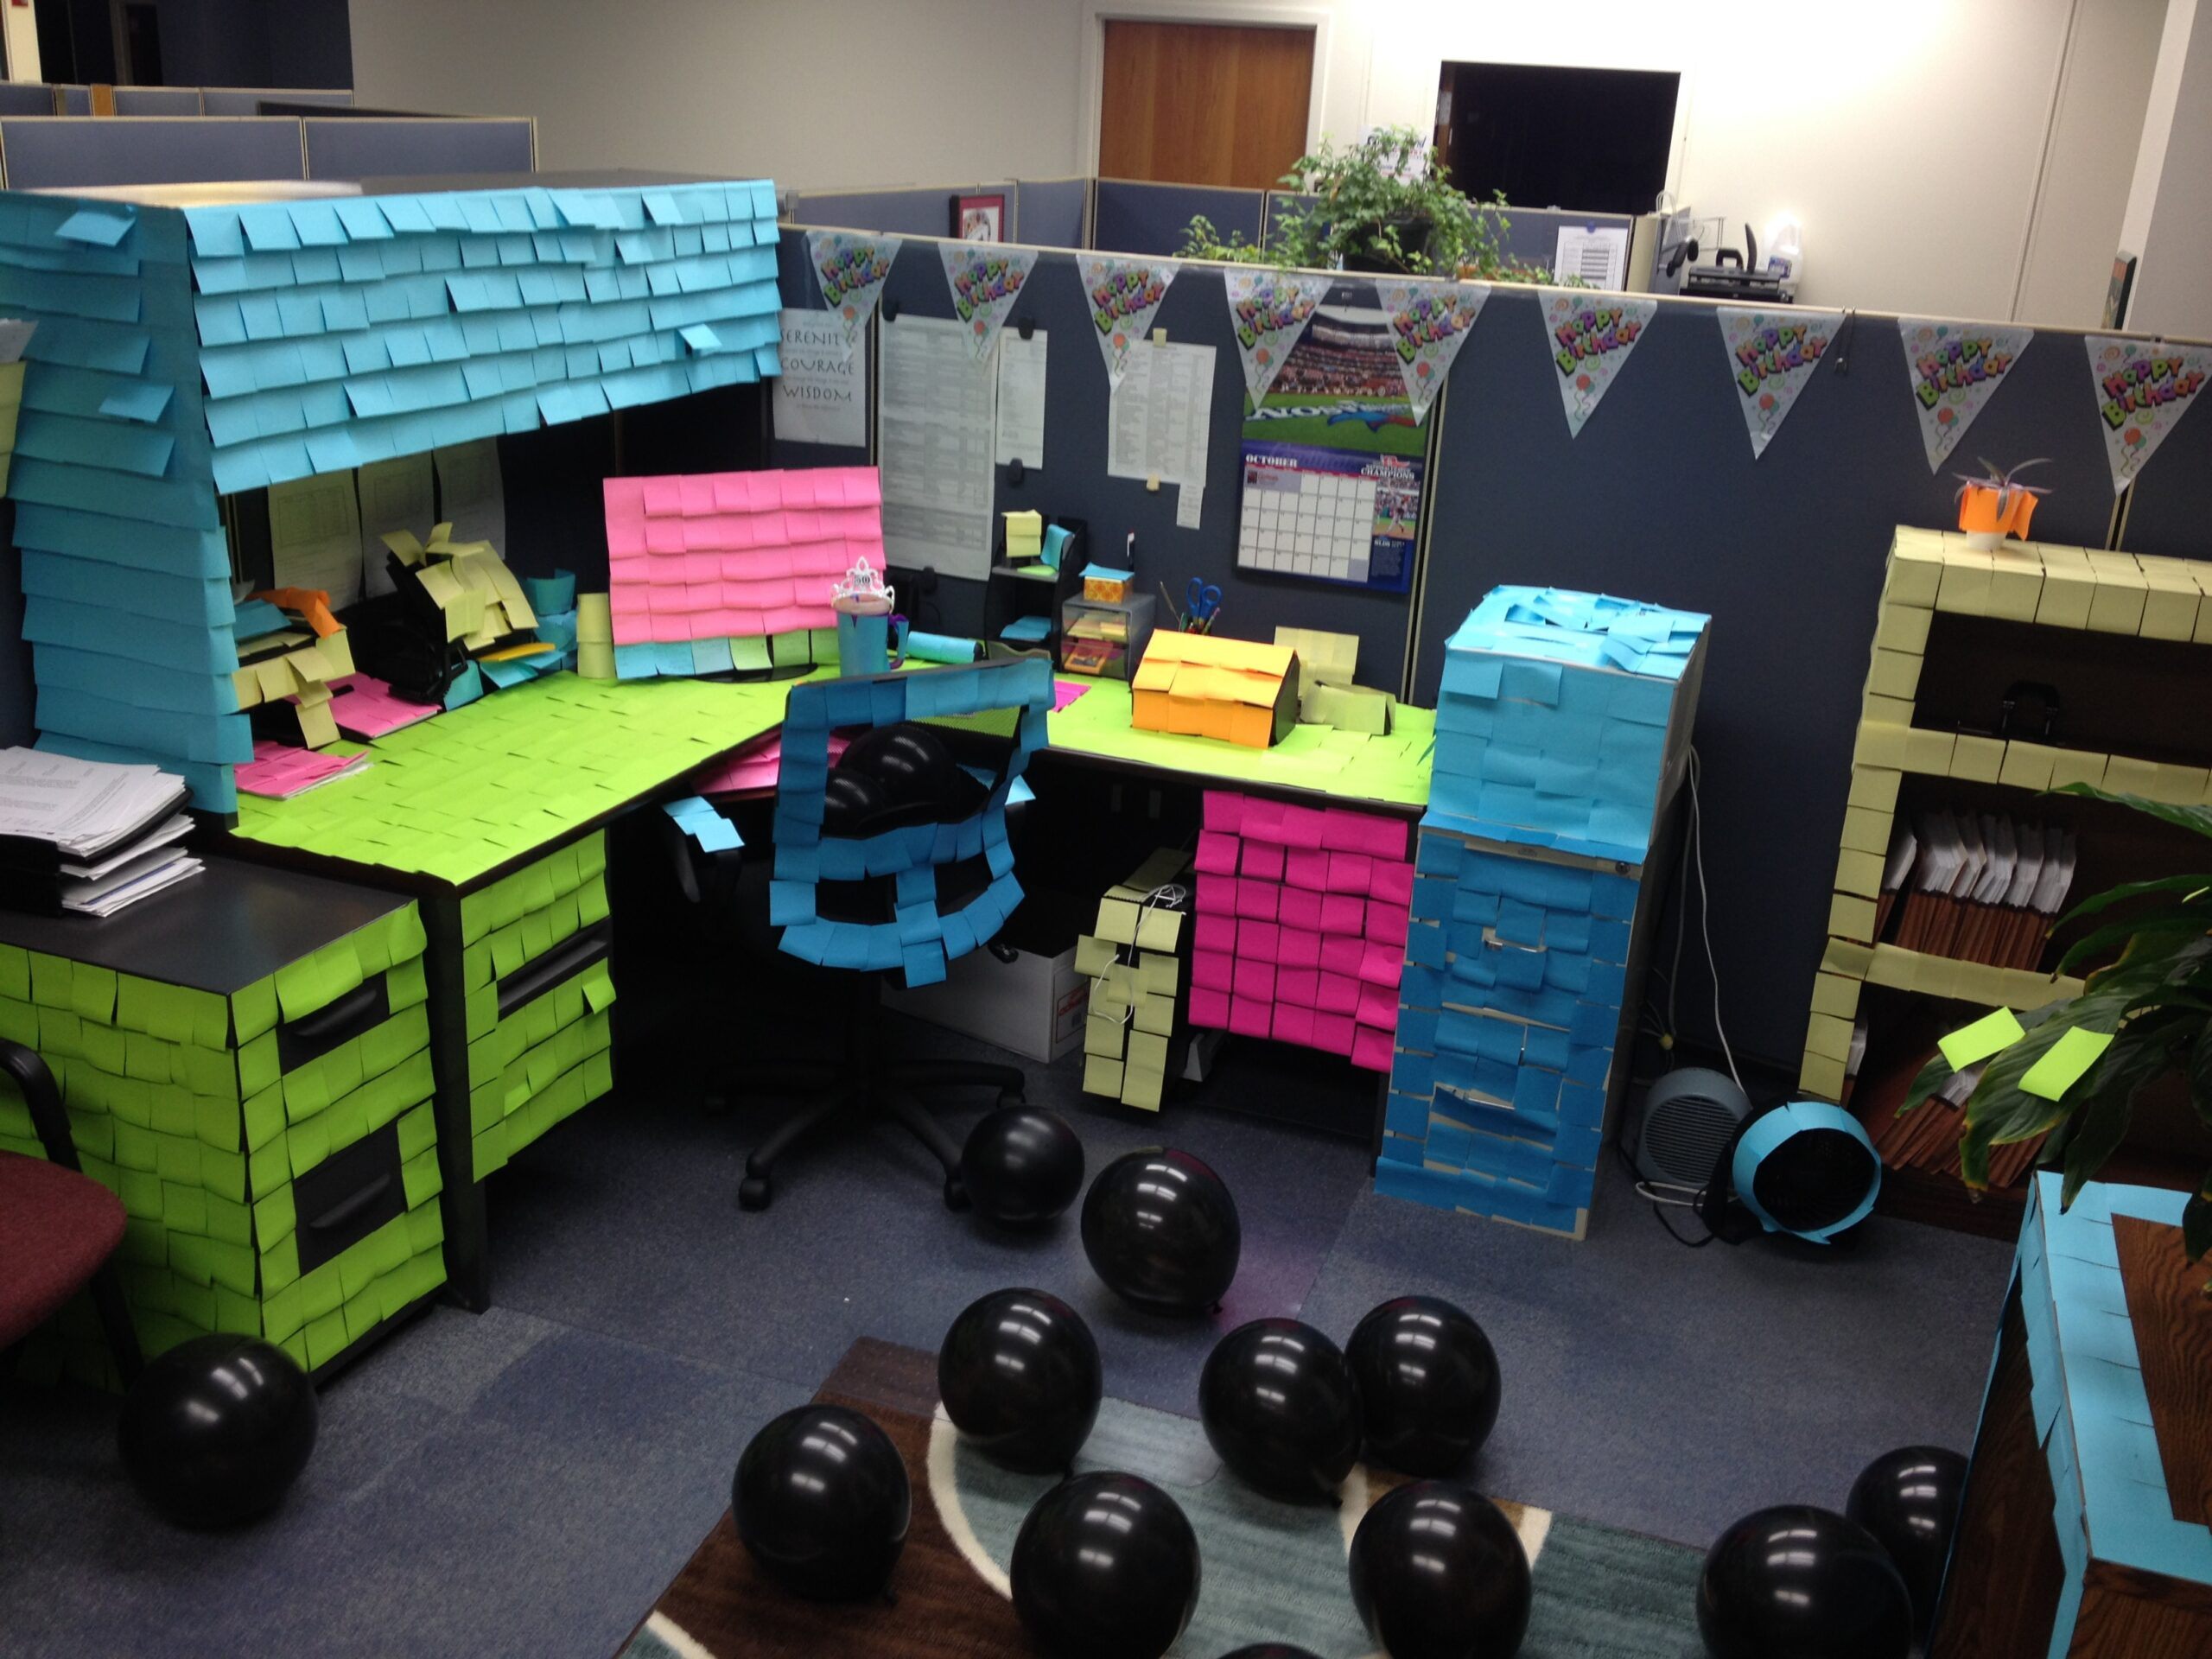 How to decorate an office with post-its